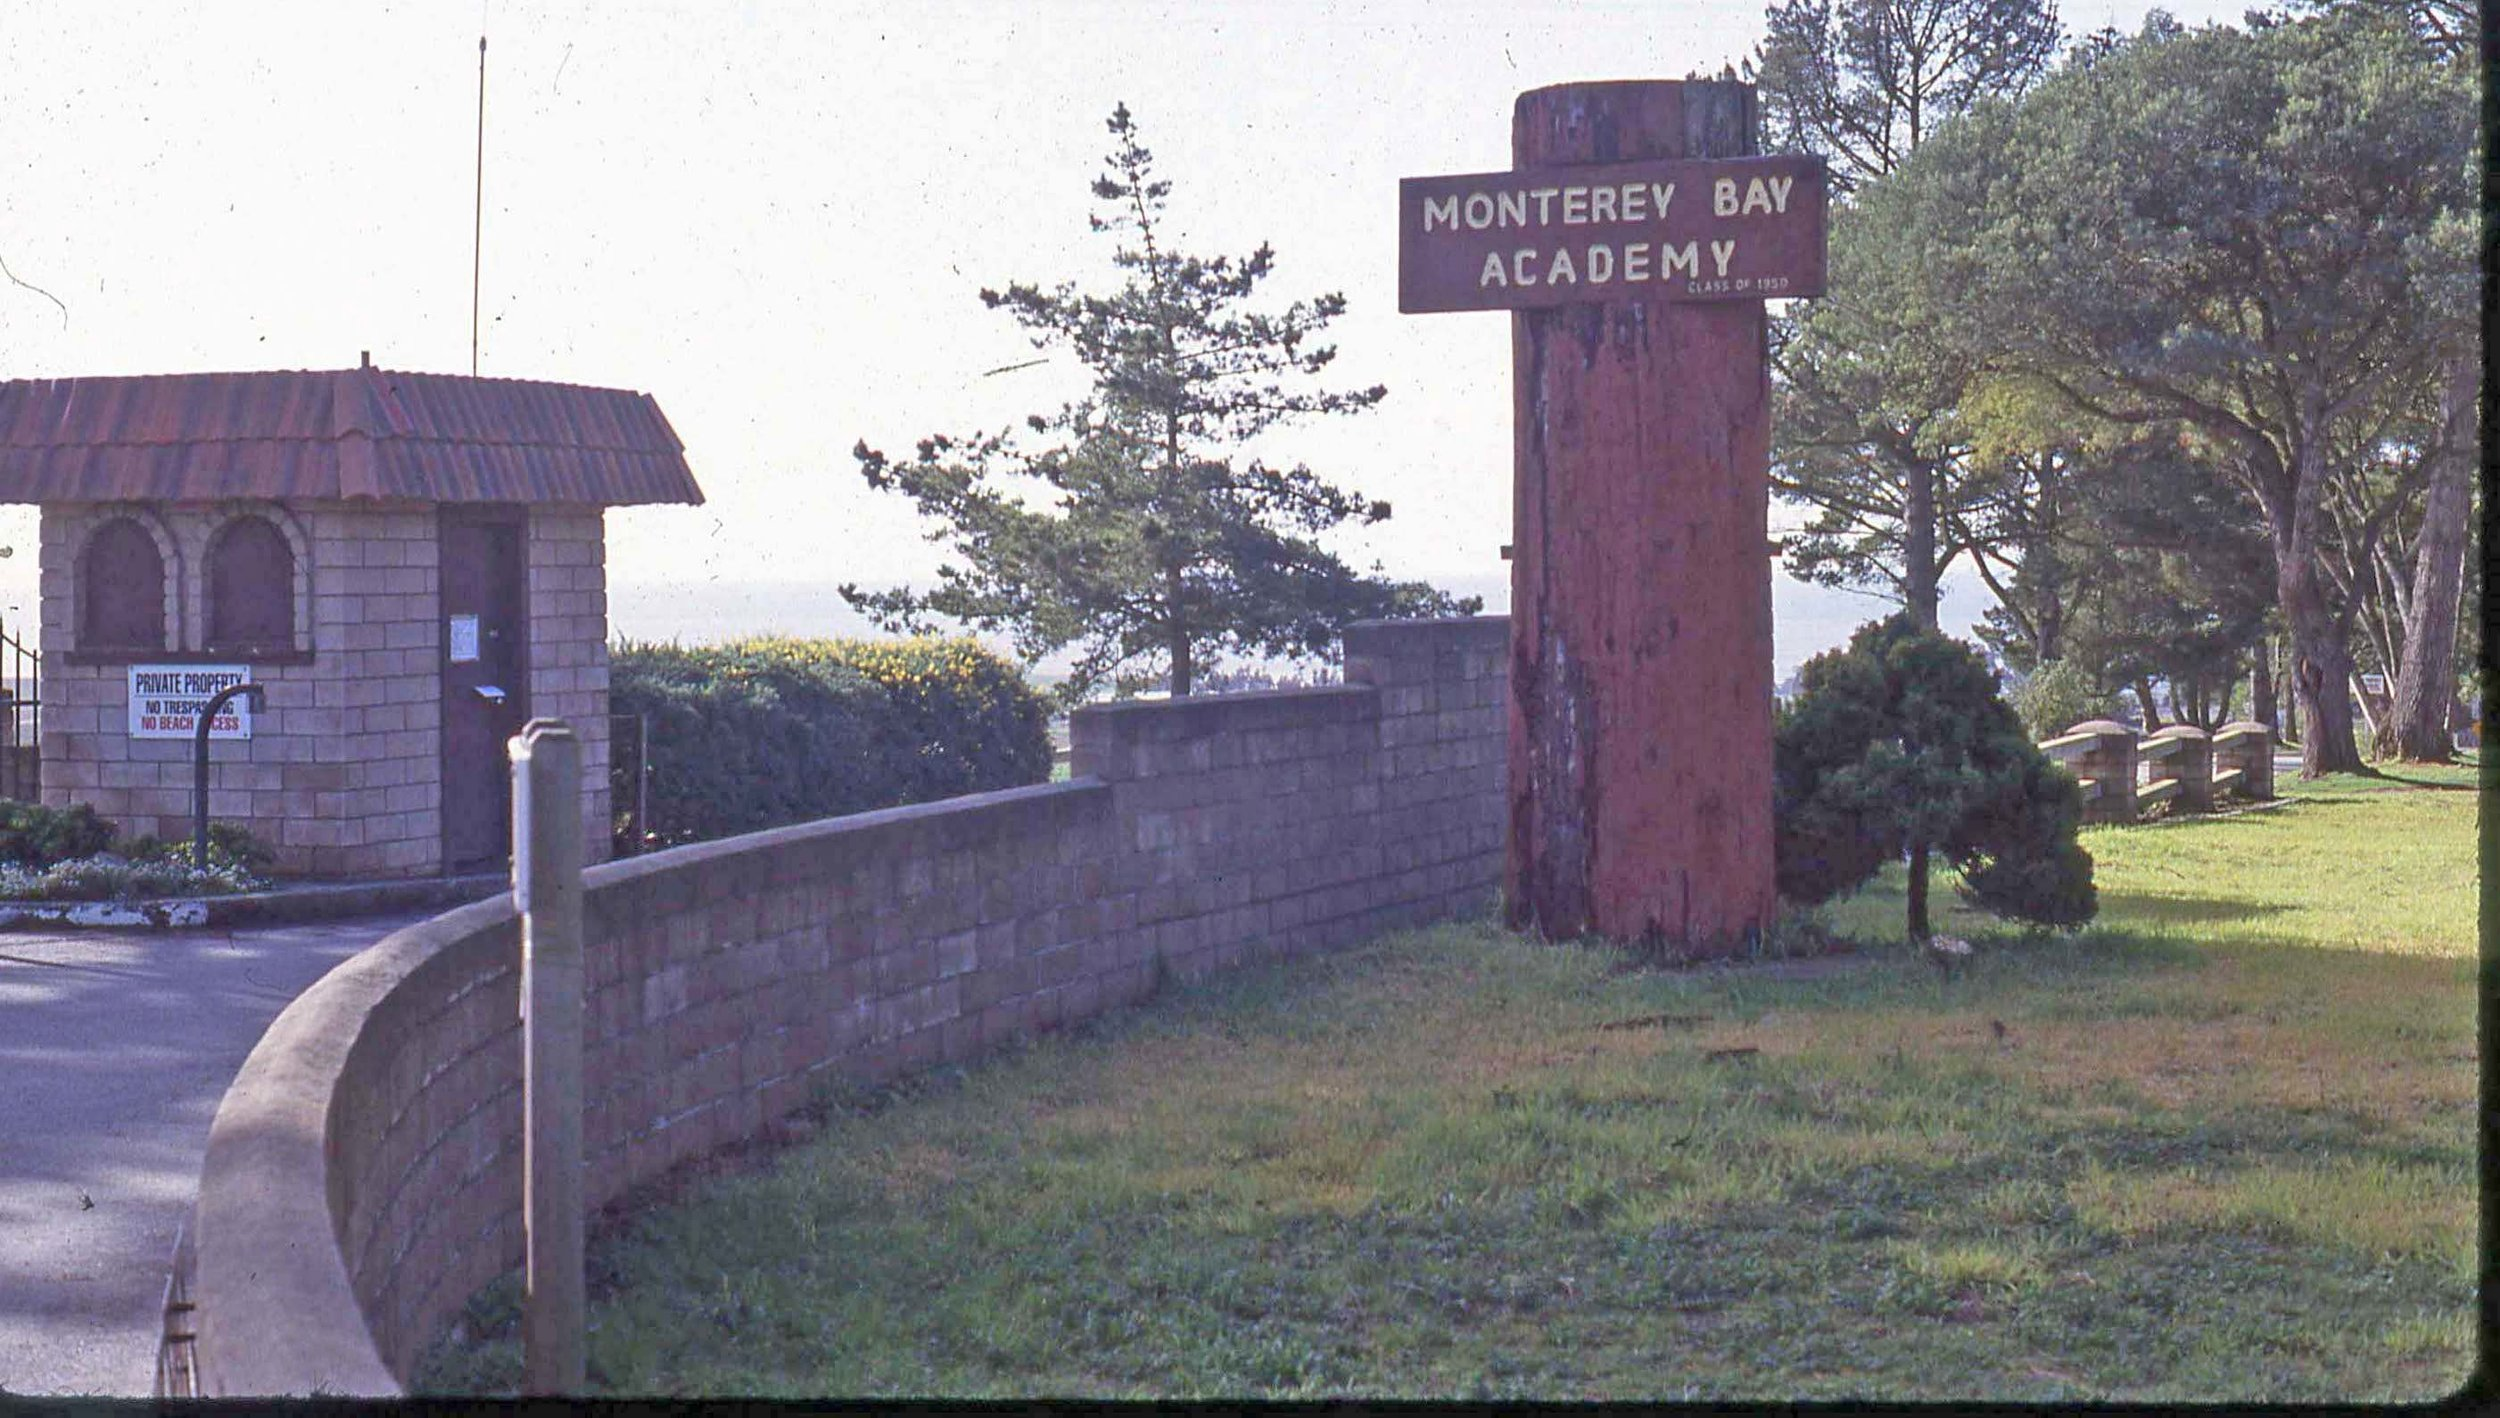 The Camp McQuaide property was eventually sold to the Seventh Day Adventist church that established Monterey Bay Academy, a boarding high school attracting students from all over the world